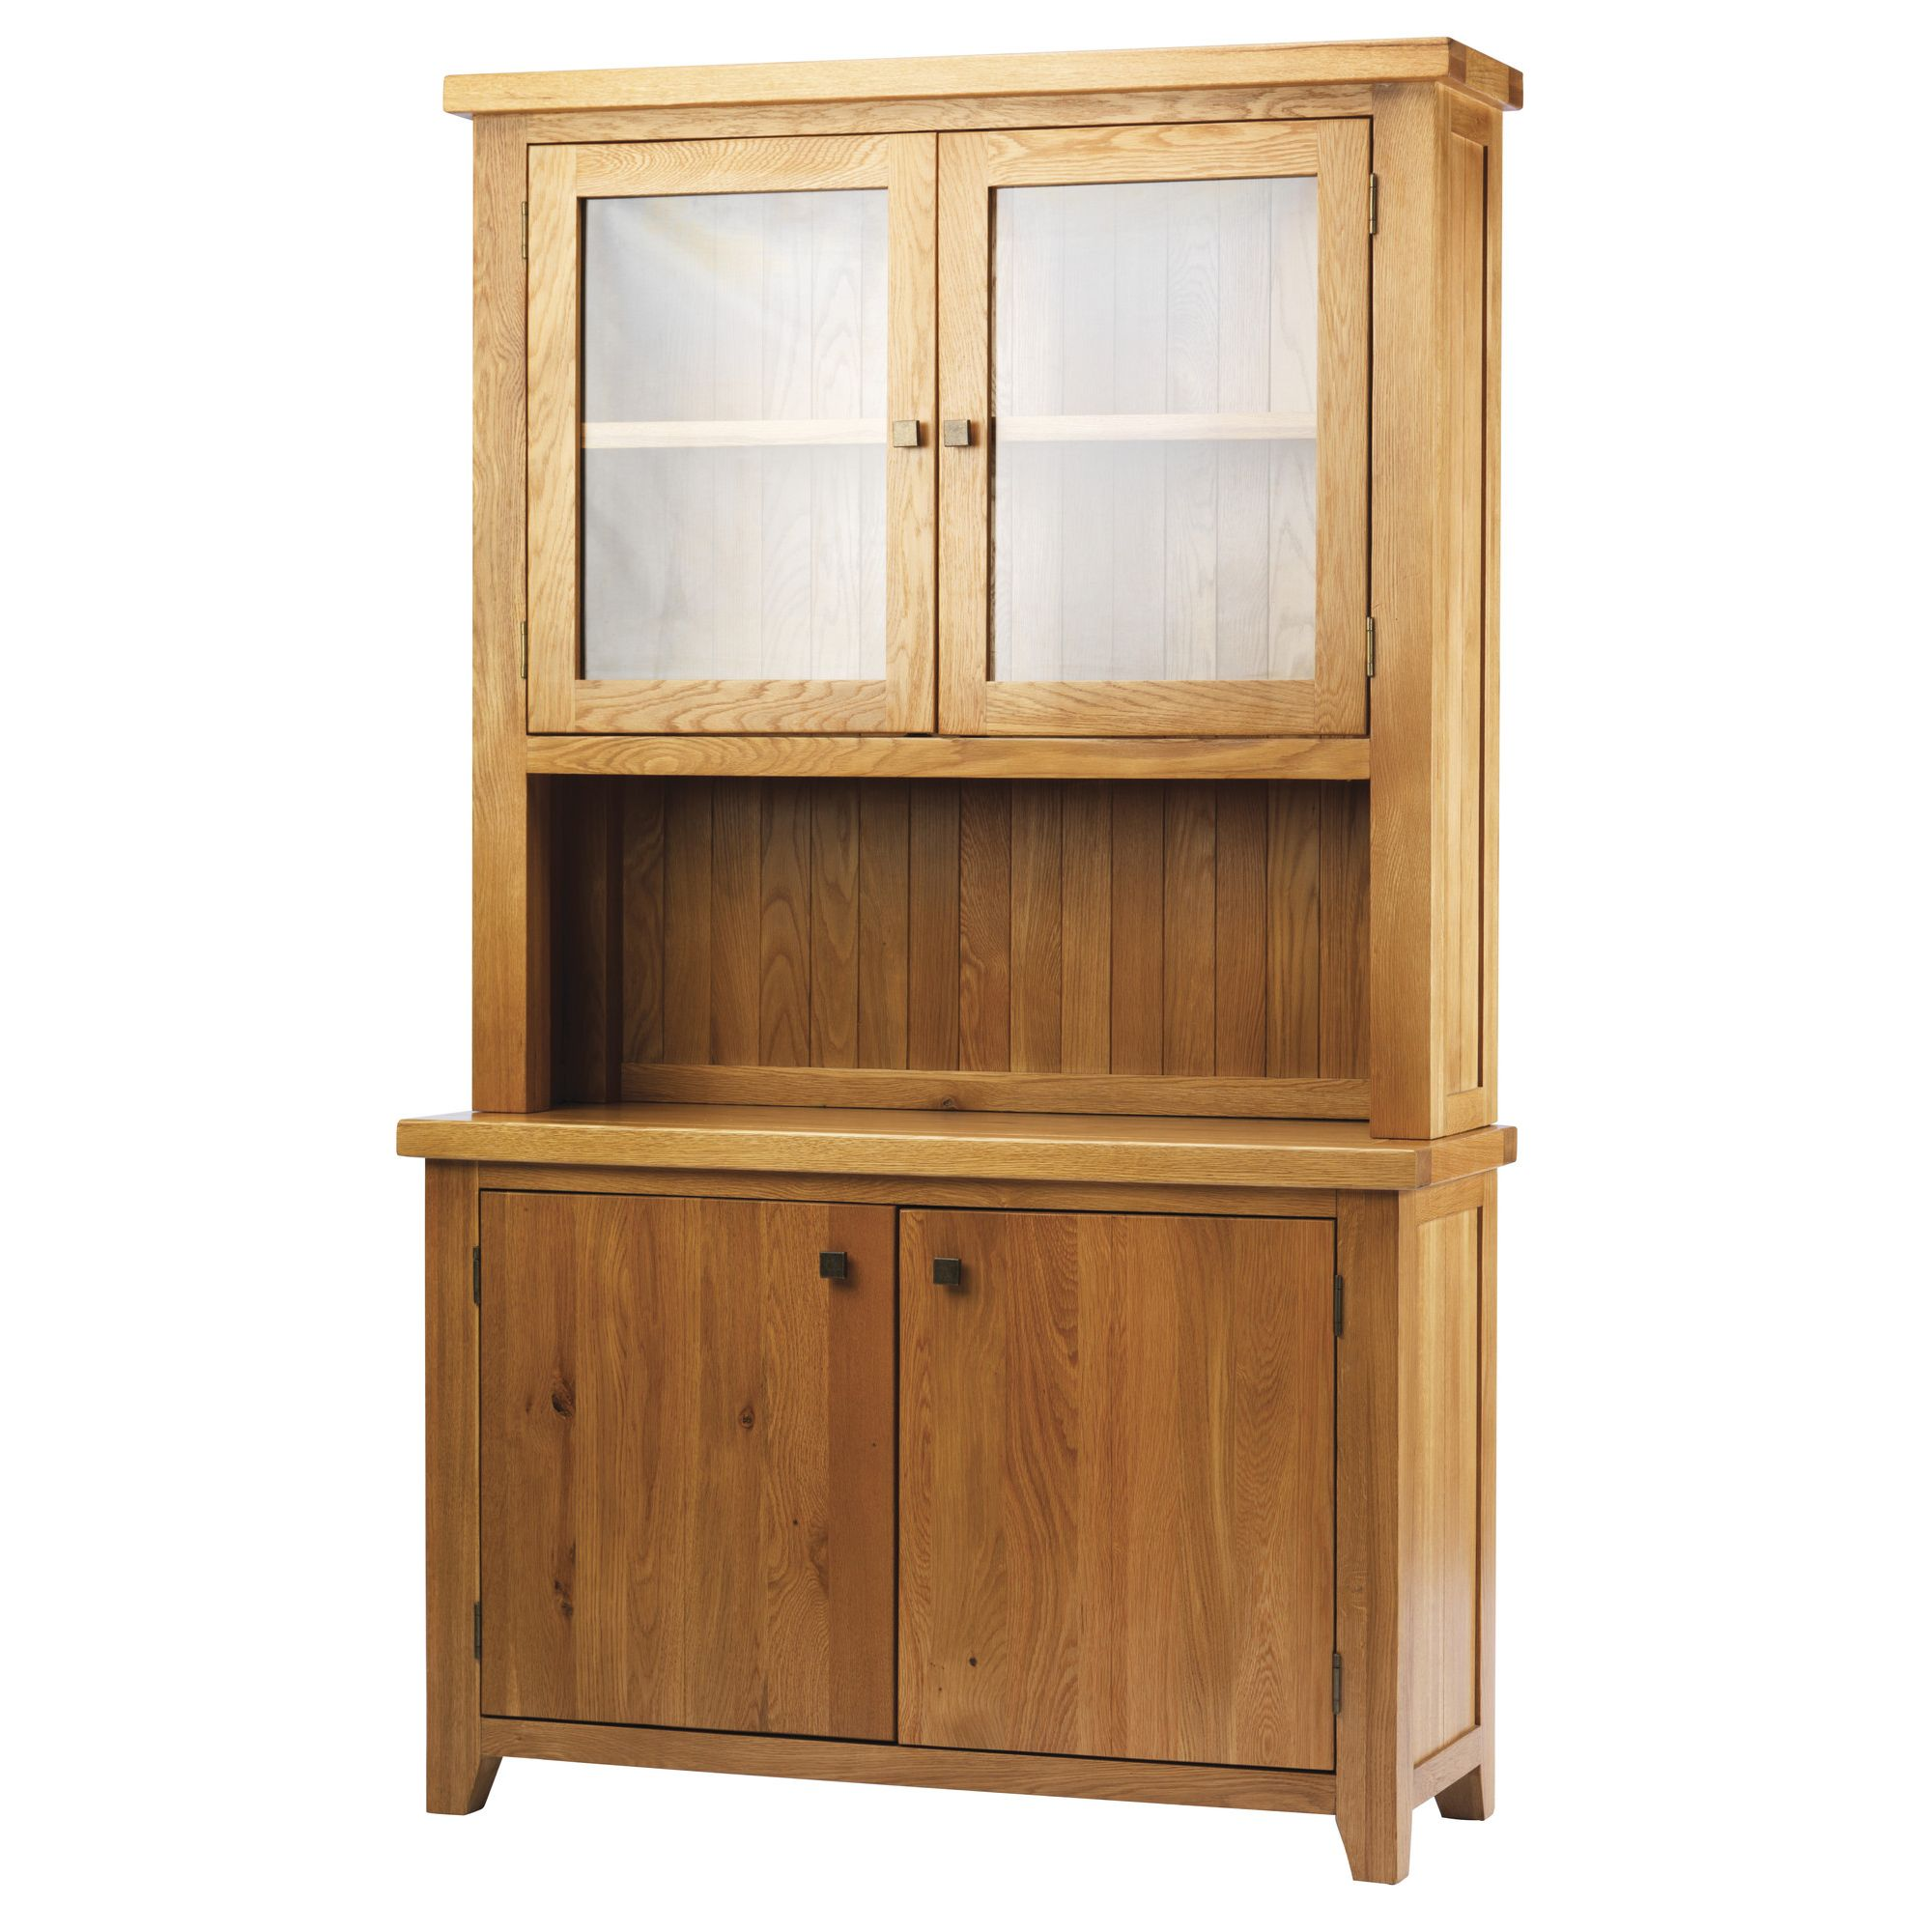 Thorndon Taunton Hutch in Medium Oak at Tesco Direct